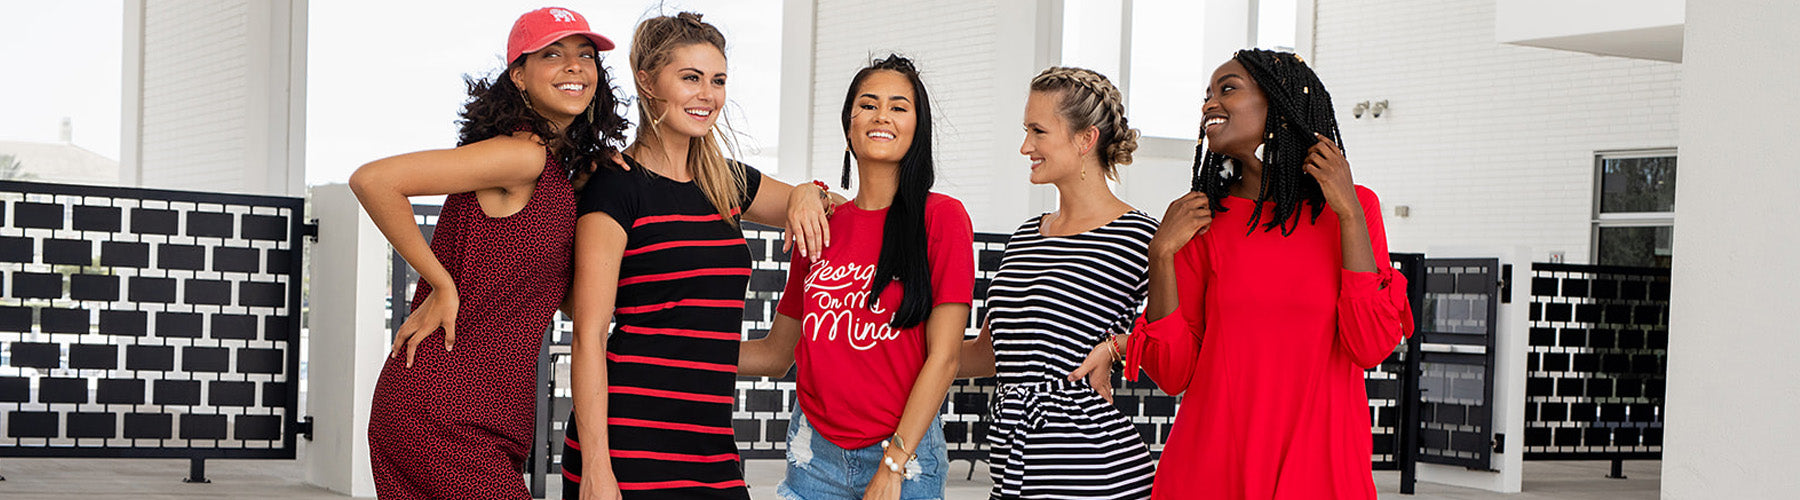 aacd45b86ba20 You will love our growing selection of University of Georgia Bulldogs Women's  apparel! Tired of wearing the same old generic t-shirt to UGA game day?!